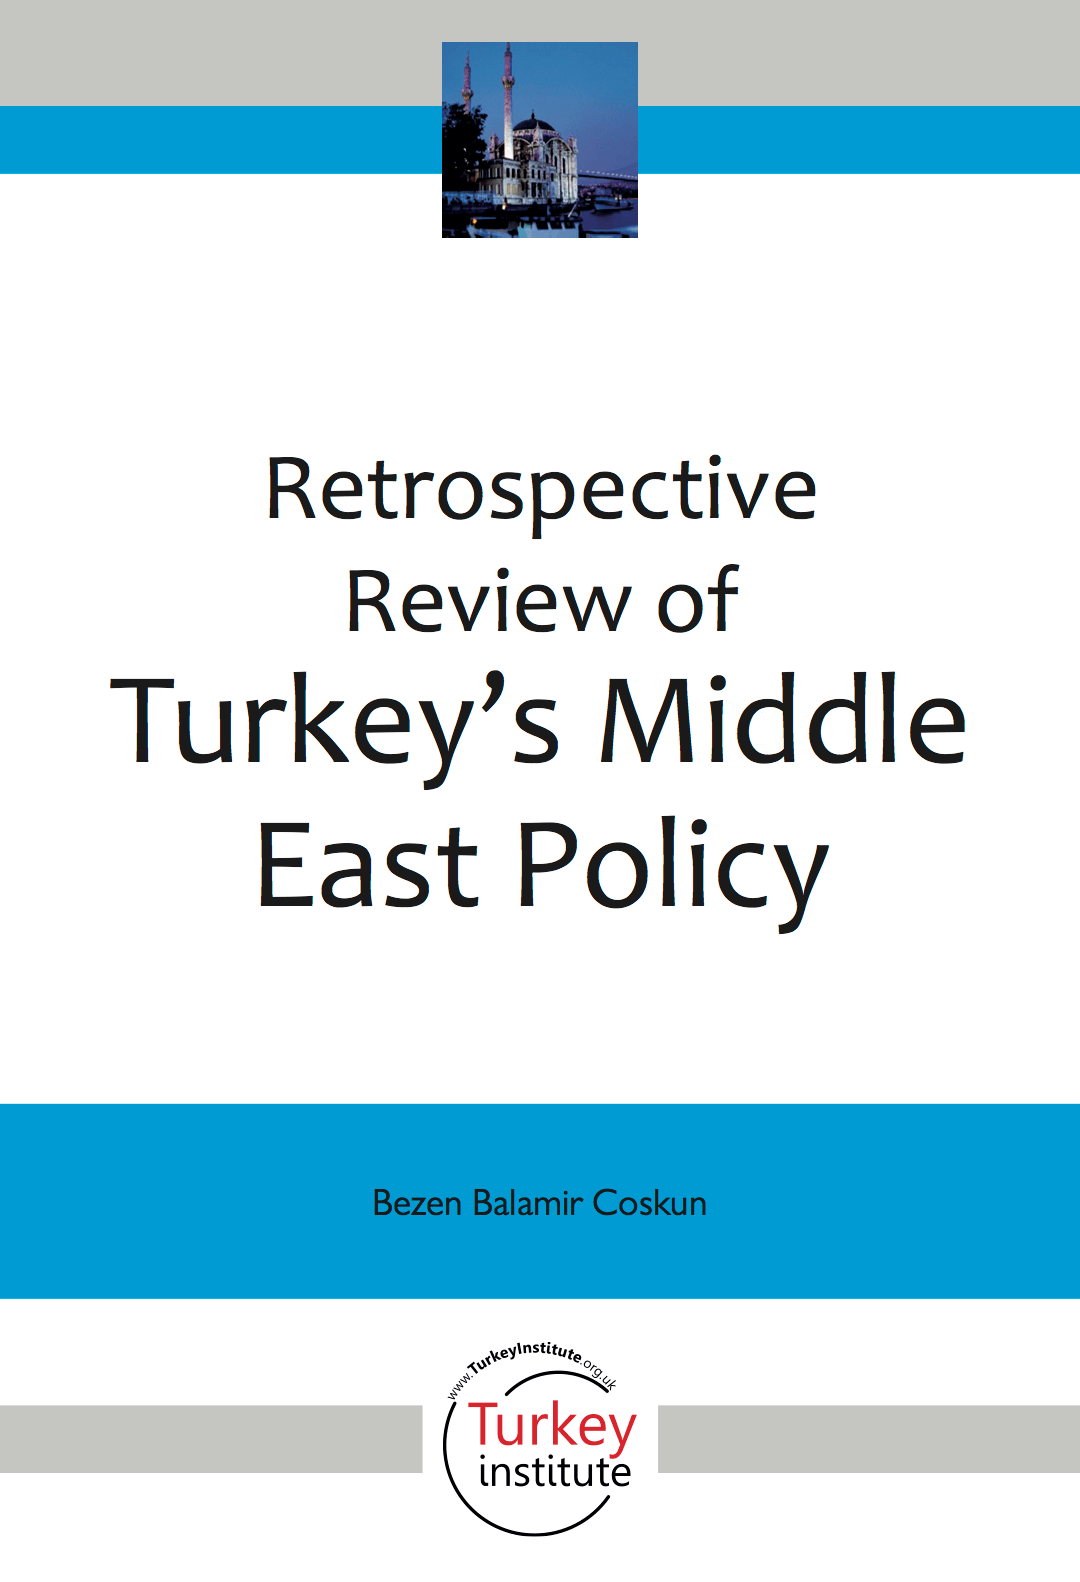 Retrospective Review of Turkey's Middle East Policy